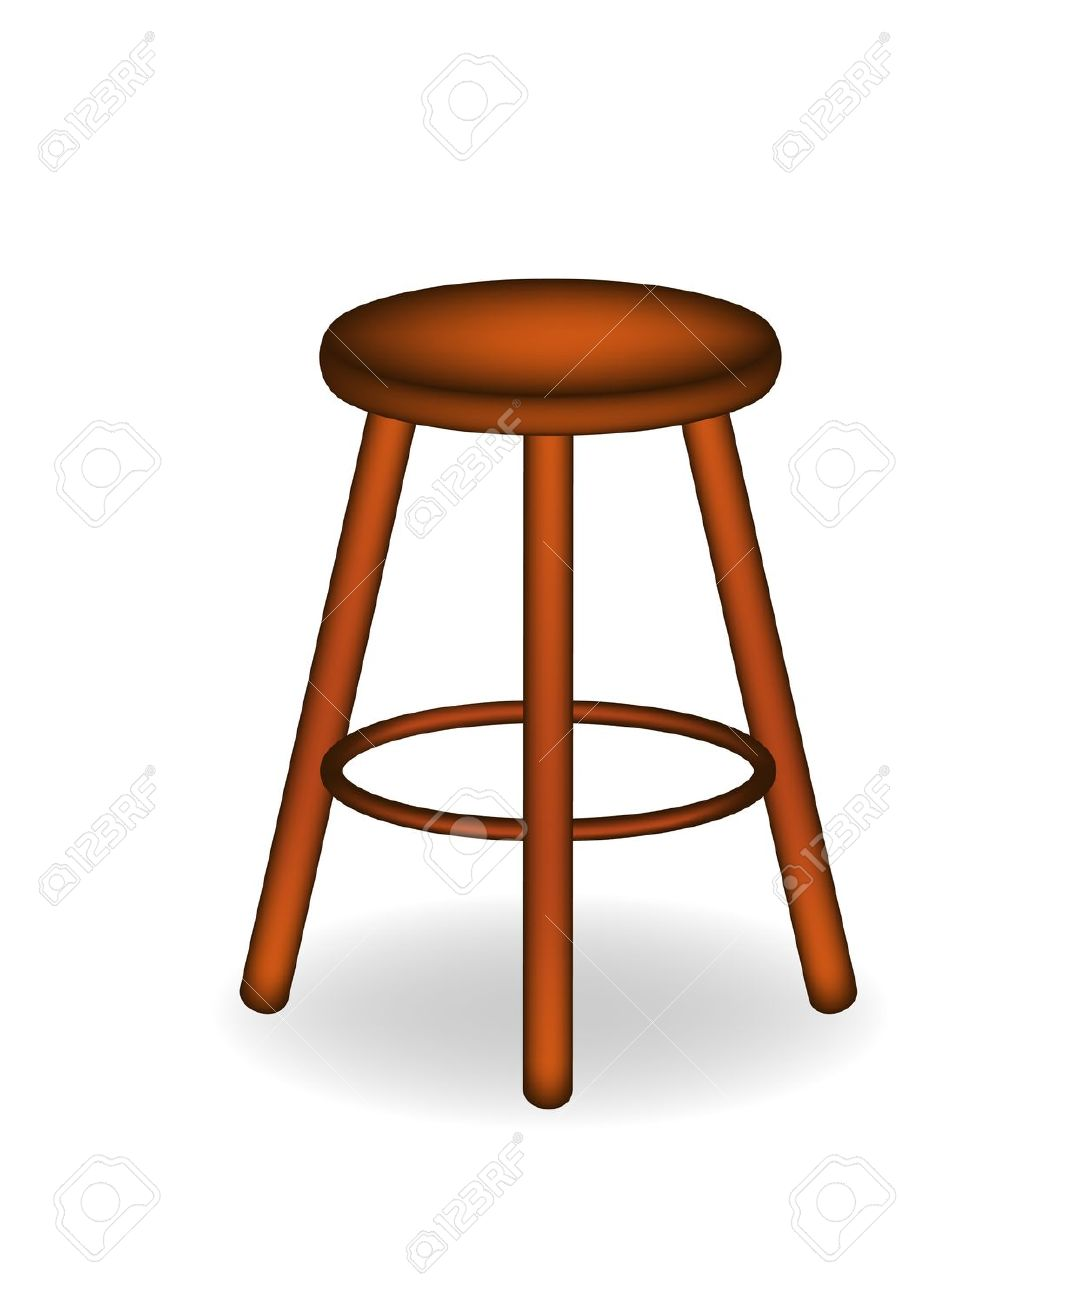 988 Bar Stool Cliparts, Stock Vector And Royalty Free Bar Stool.